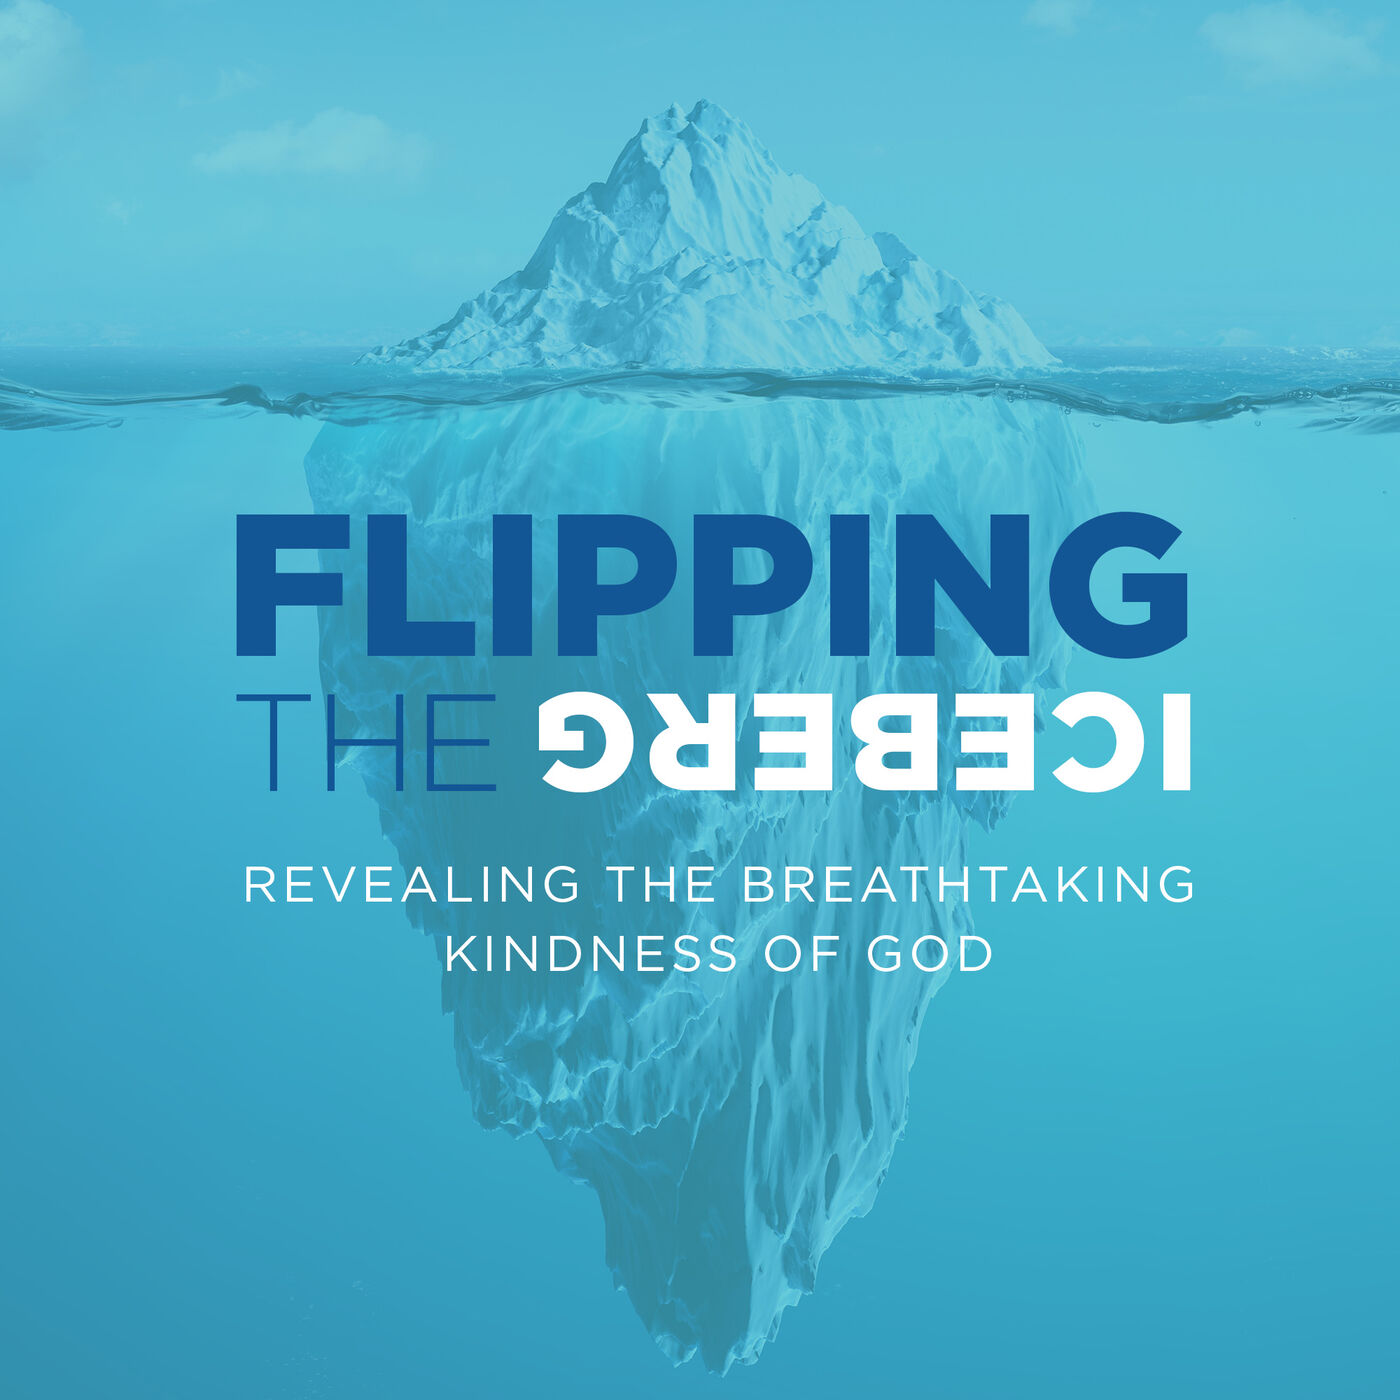 Flipping the Iceberg - In My Disasters (Week 2)